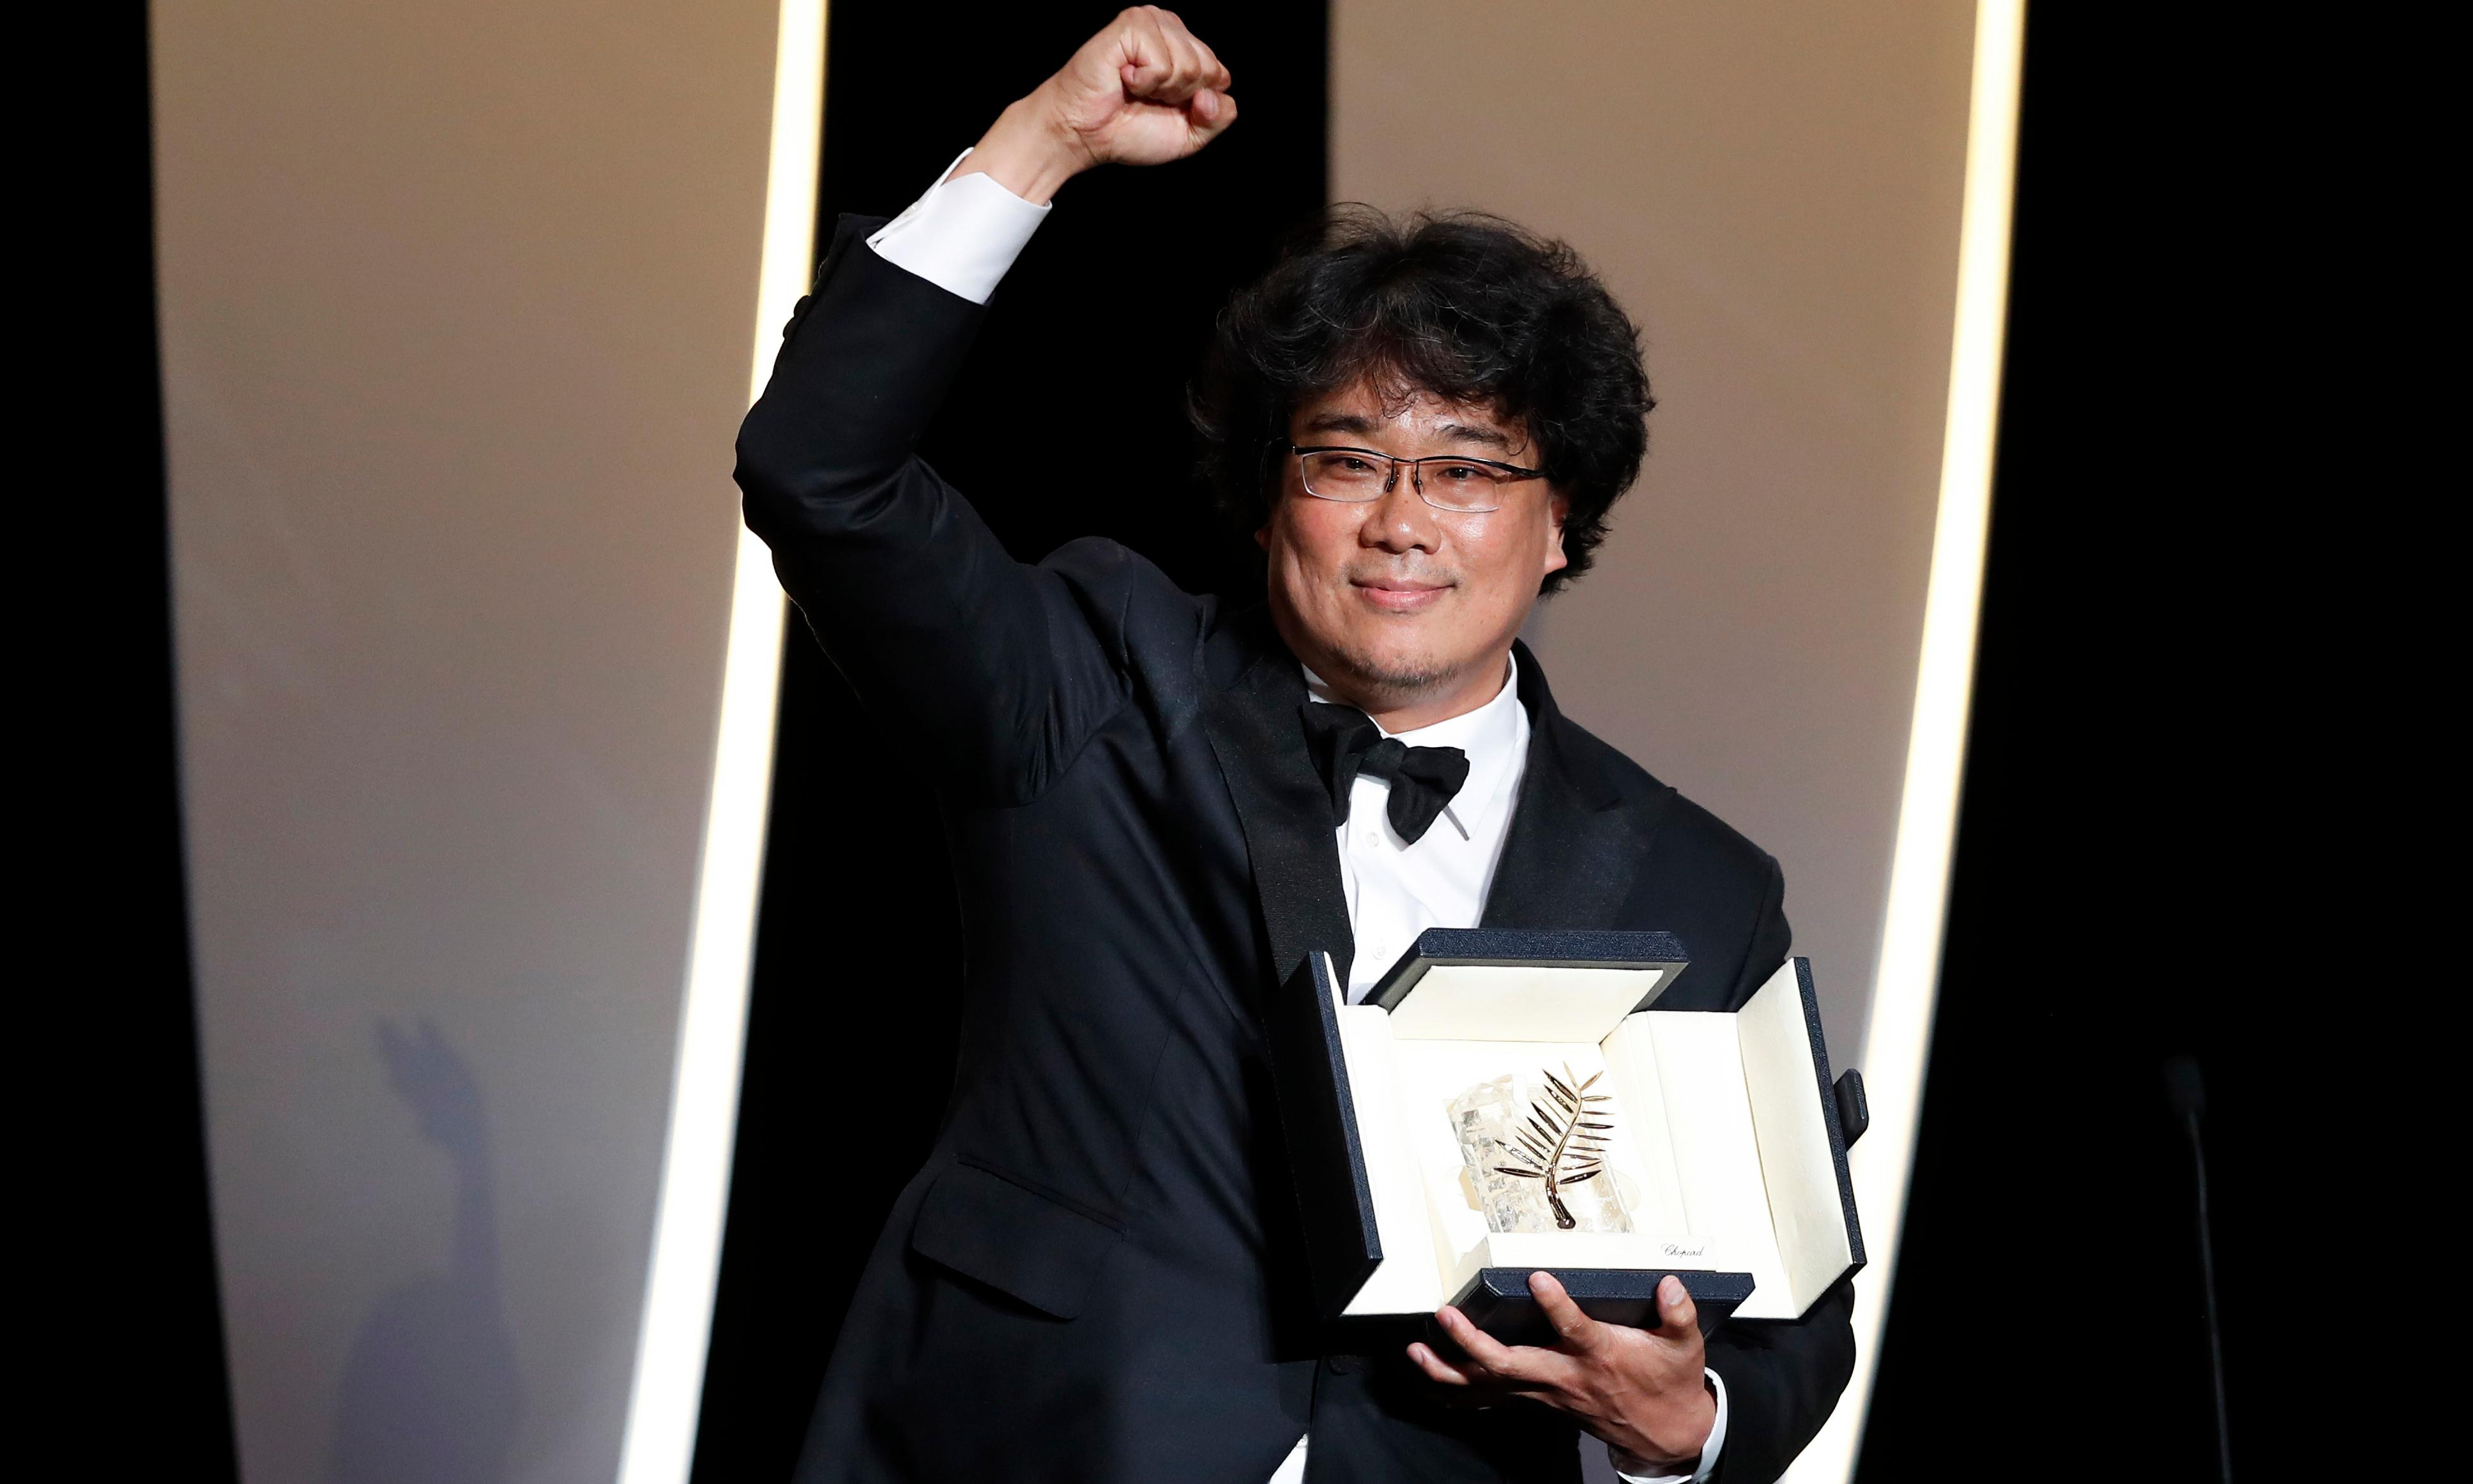 Bong Joon-ho's Parasite wins Palme d'Or at Cannes film festival